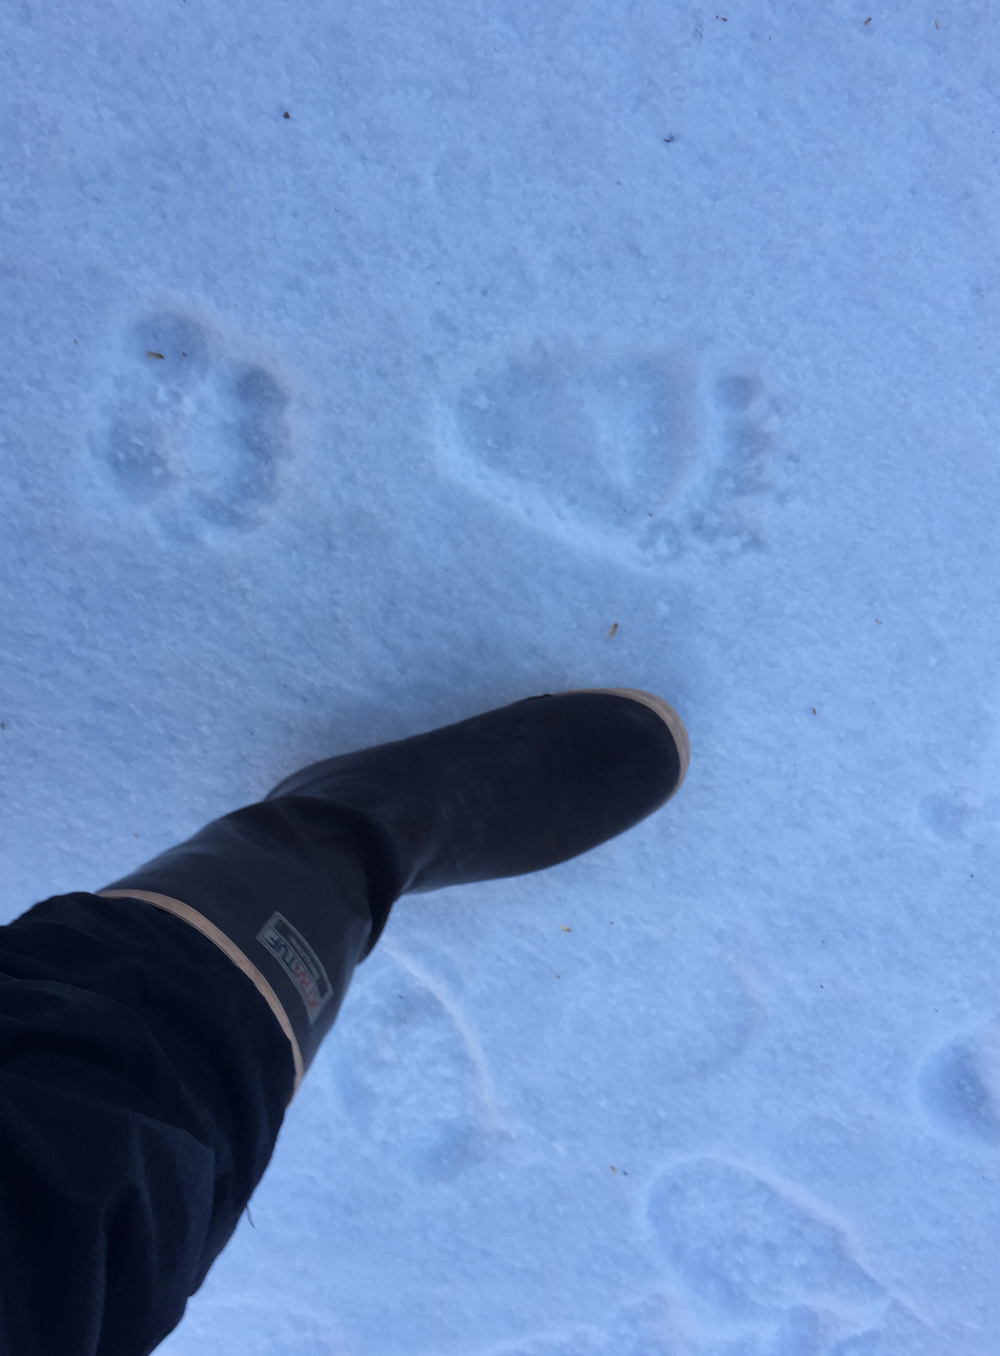 Grizzly tracks were always within sight as we followed bear trails through the northern bush. A recent snow and severe cold snap pushed the bears into hibernation- we hoped.